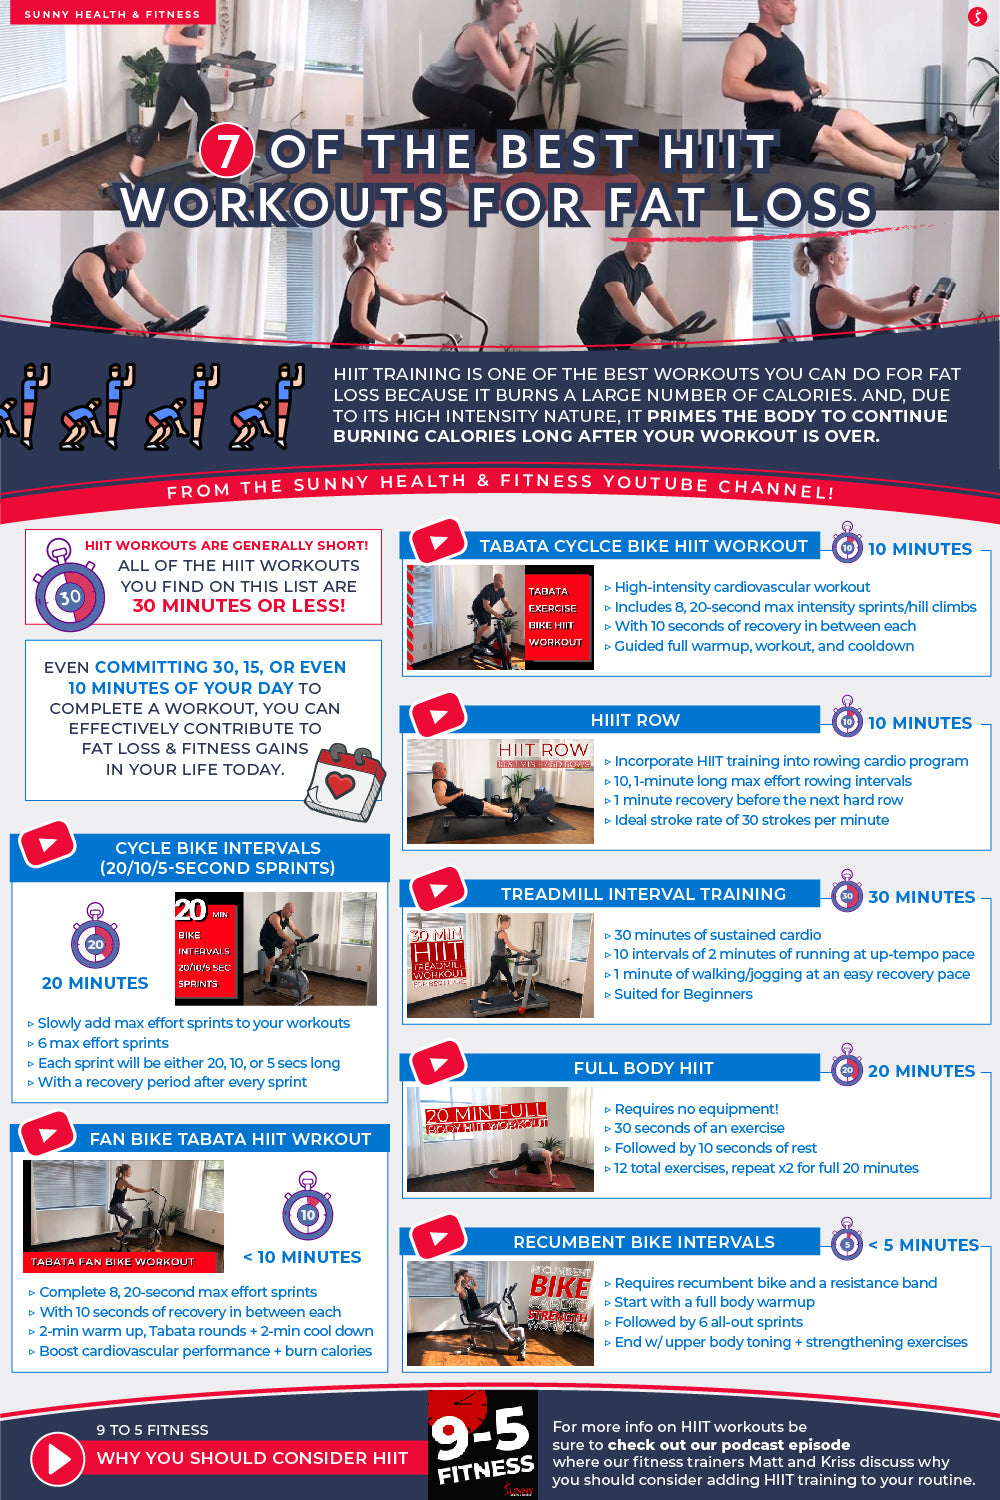 7 of the Best HIIT Workouts for Fat Loss Infographic